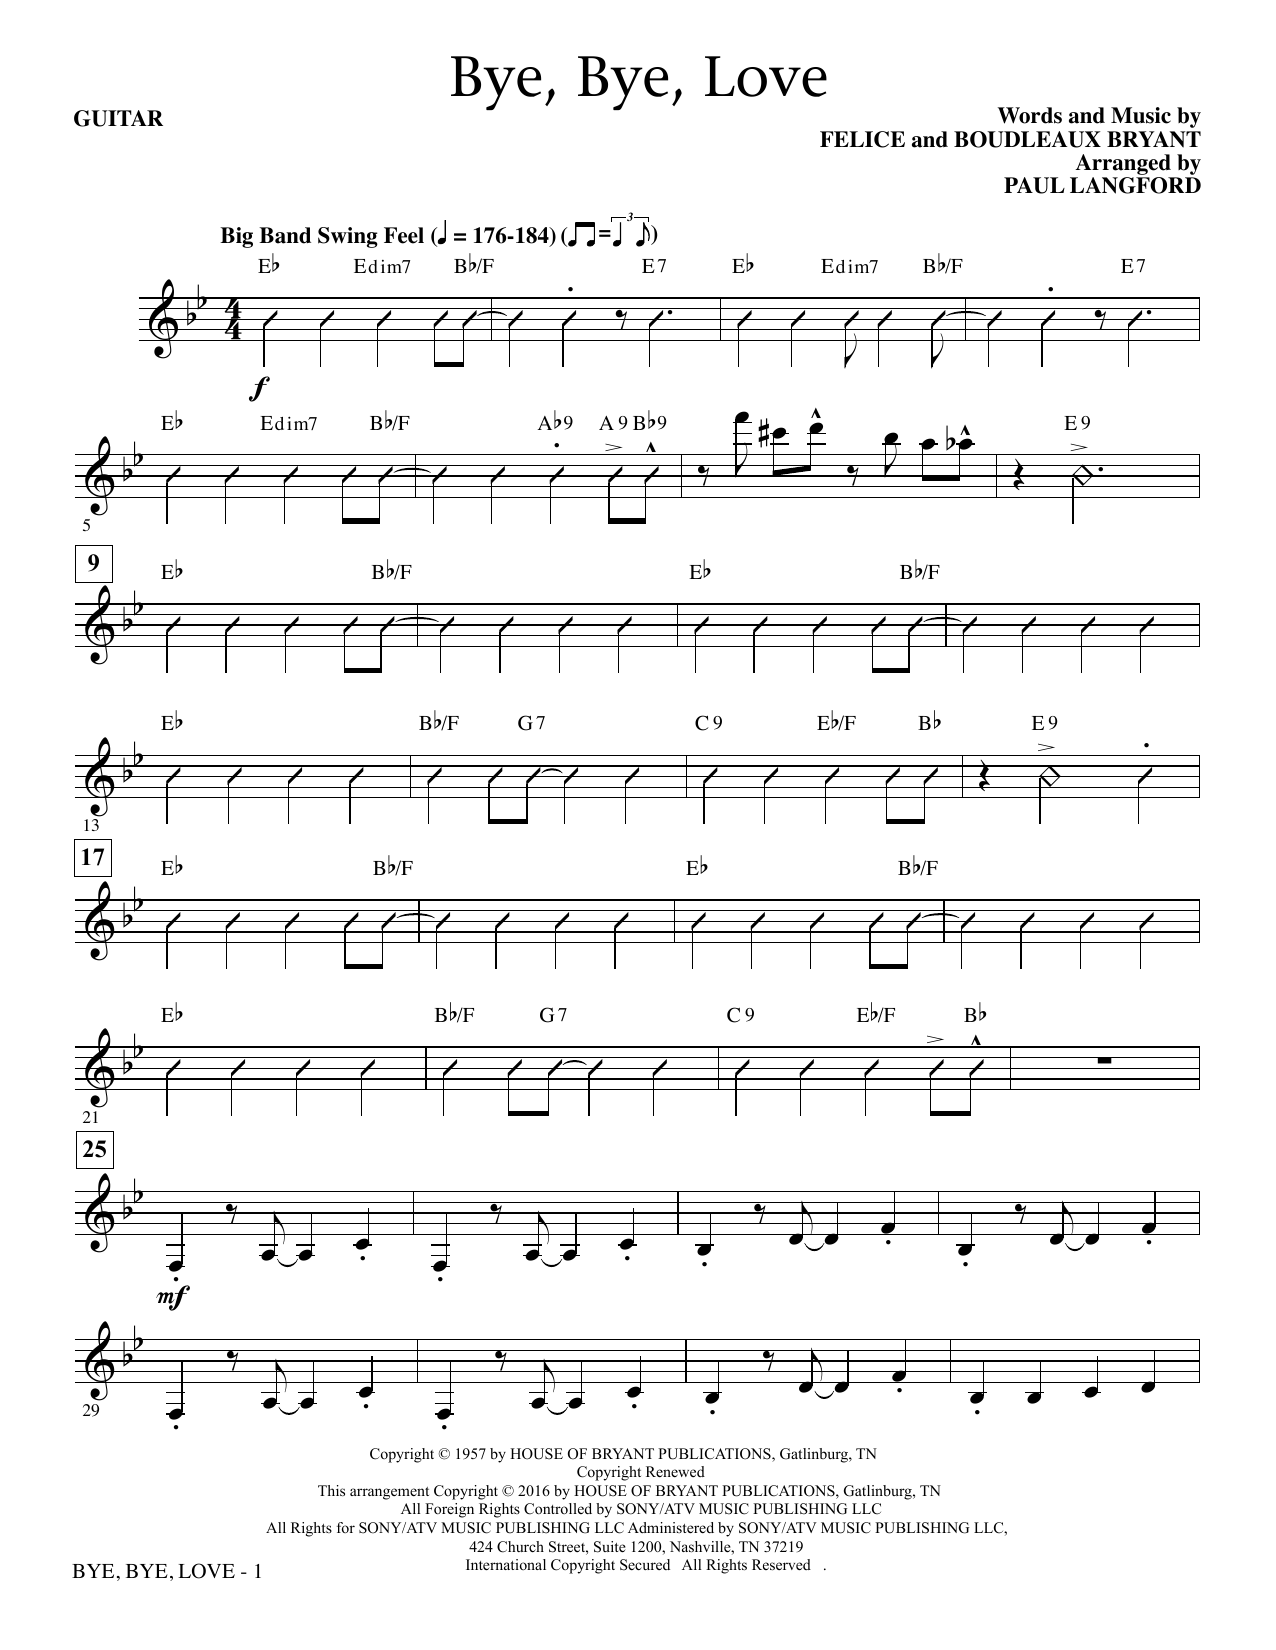 Paul Langford Bye, Bye Love - Guitar sheet music notes and chords. Download Printable PDF.